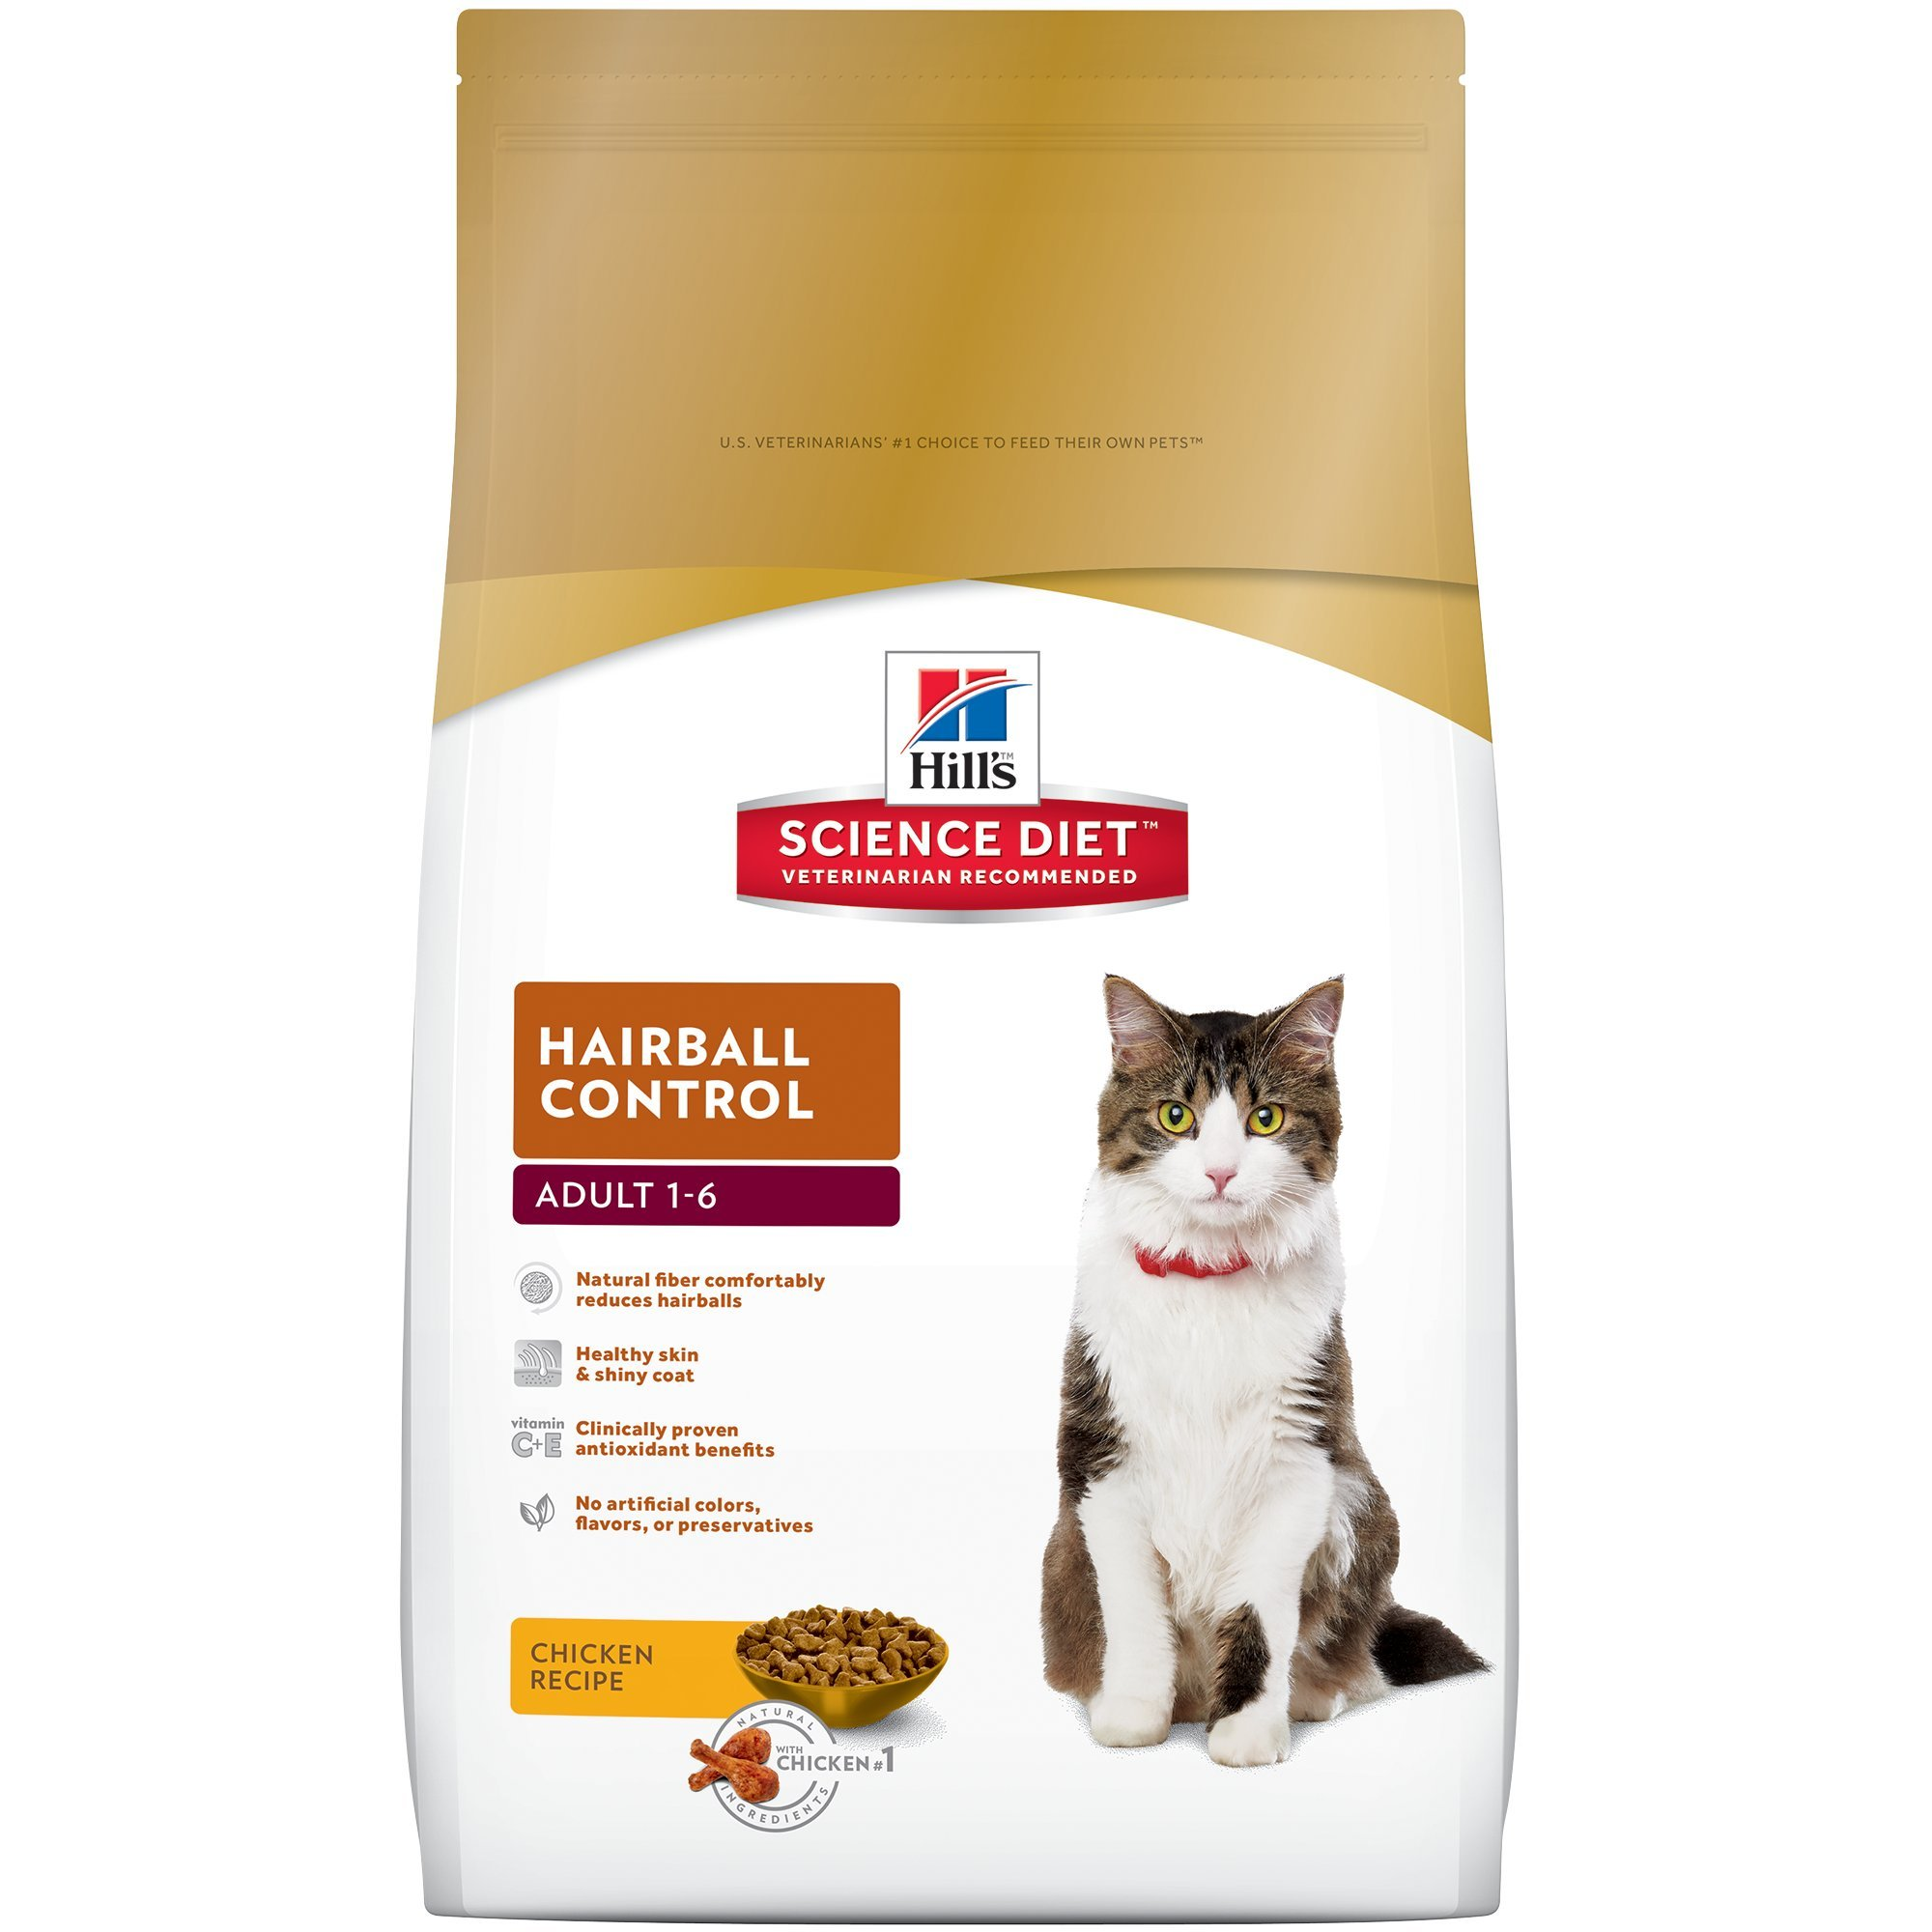 Hill's Science Diet Adult Hairball Control Cat Food, Chicken Recipe Dry Cat Food, 15.5 lb Bag